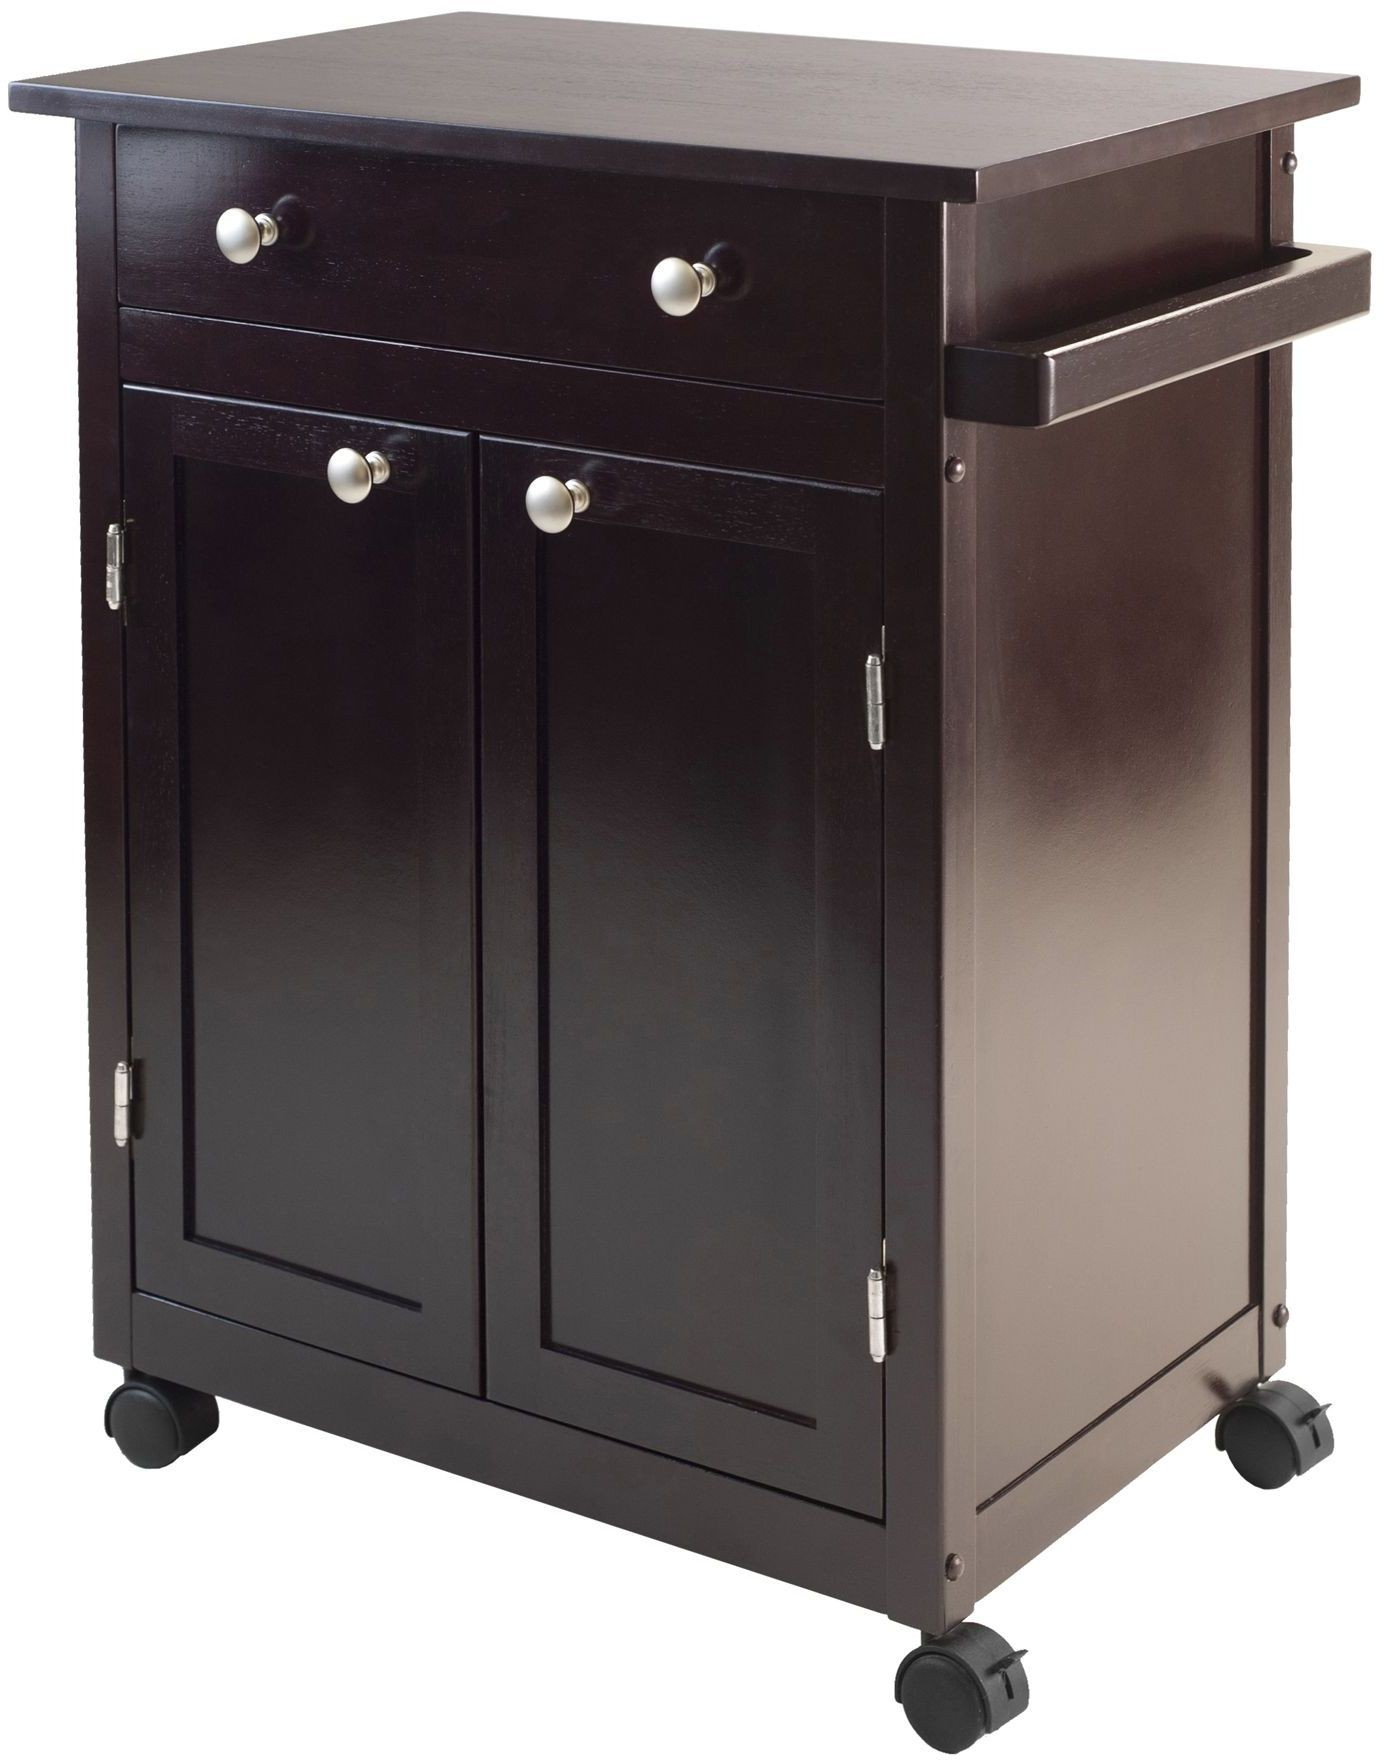 kitchen coffee cart refinish cabinets savannah espresso from winsomewood coleman